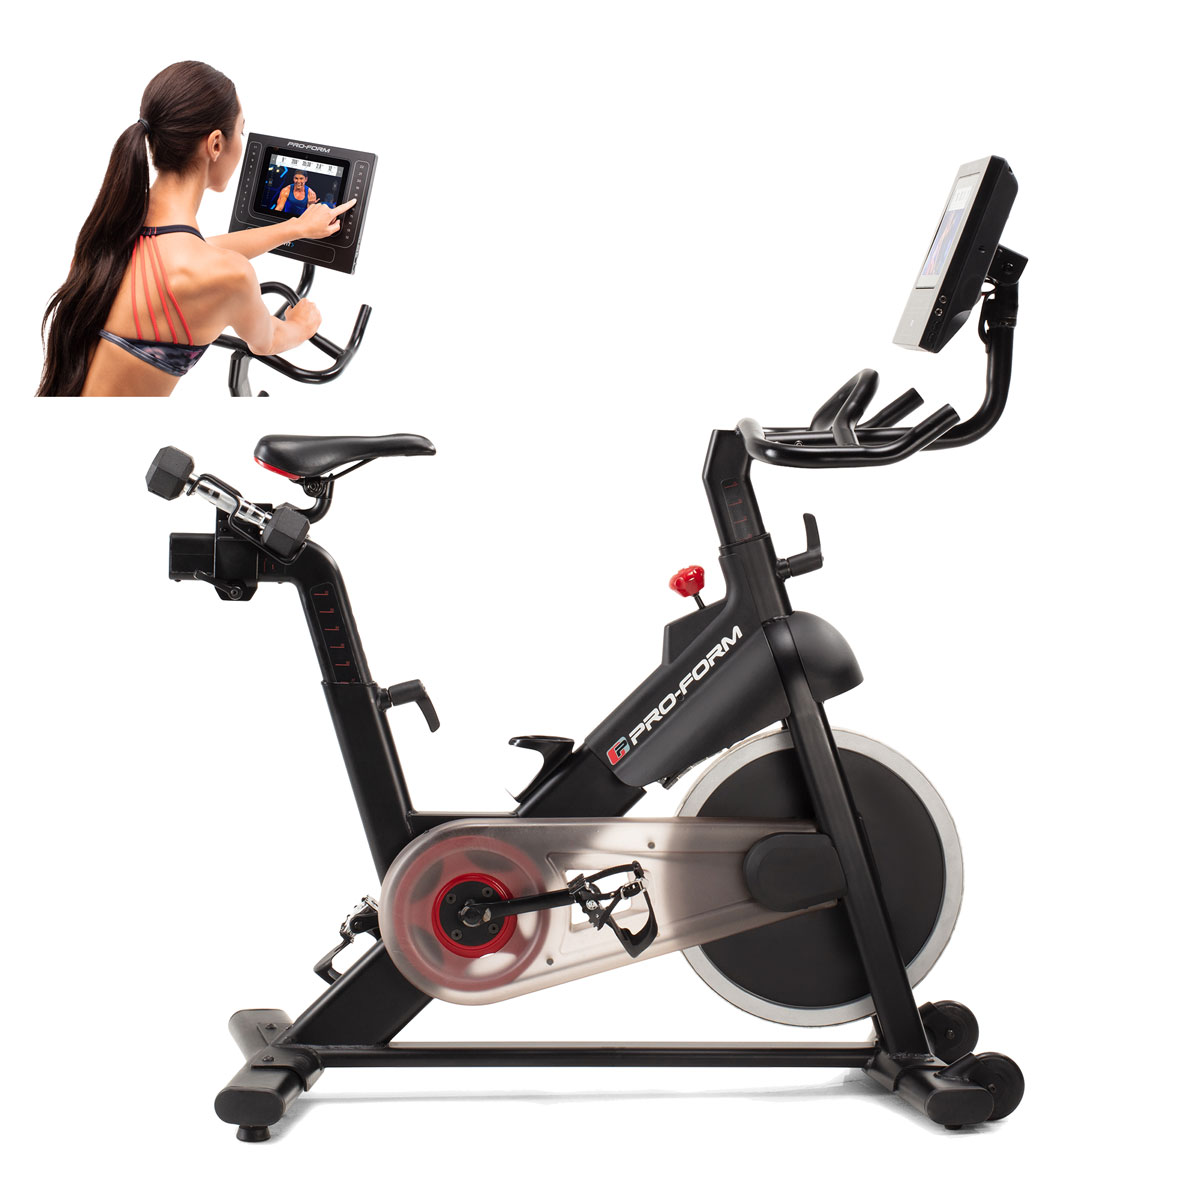 Studio Bike Pro  is a durable solid frame bike that holds up to multiple users, daily rides with thoughtful design features powered by iFit studio classes streamed to its HD touchscreen